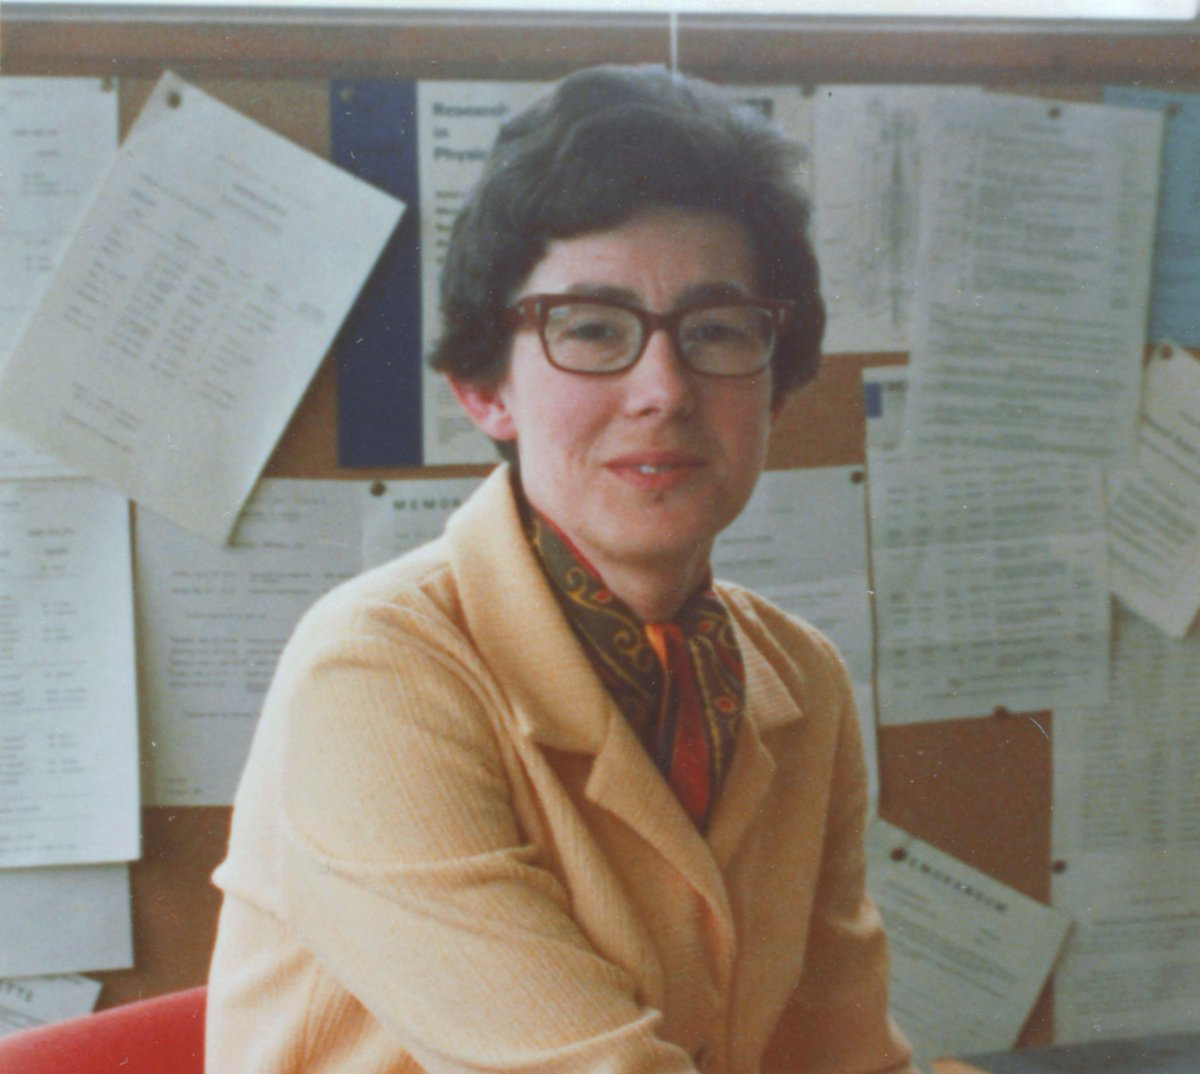 Our founder Professor Daphne Jackson OBE was born #OTD in 1936! She became the UK's 1st female Professor of Physics @UniOfSurrey in 1971. A brilliant scientist & campaigner, she knew it was vital to return researchers to careers after a break. Her legacy lives on through our work https://t.co/yTKIAFGZzf